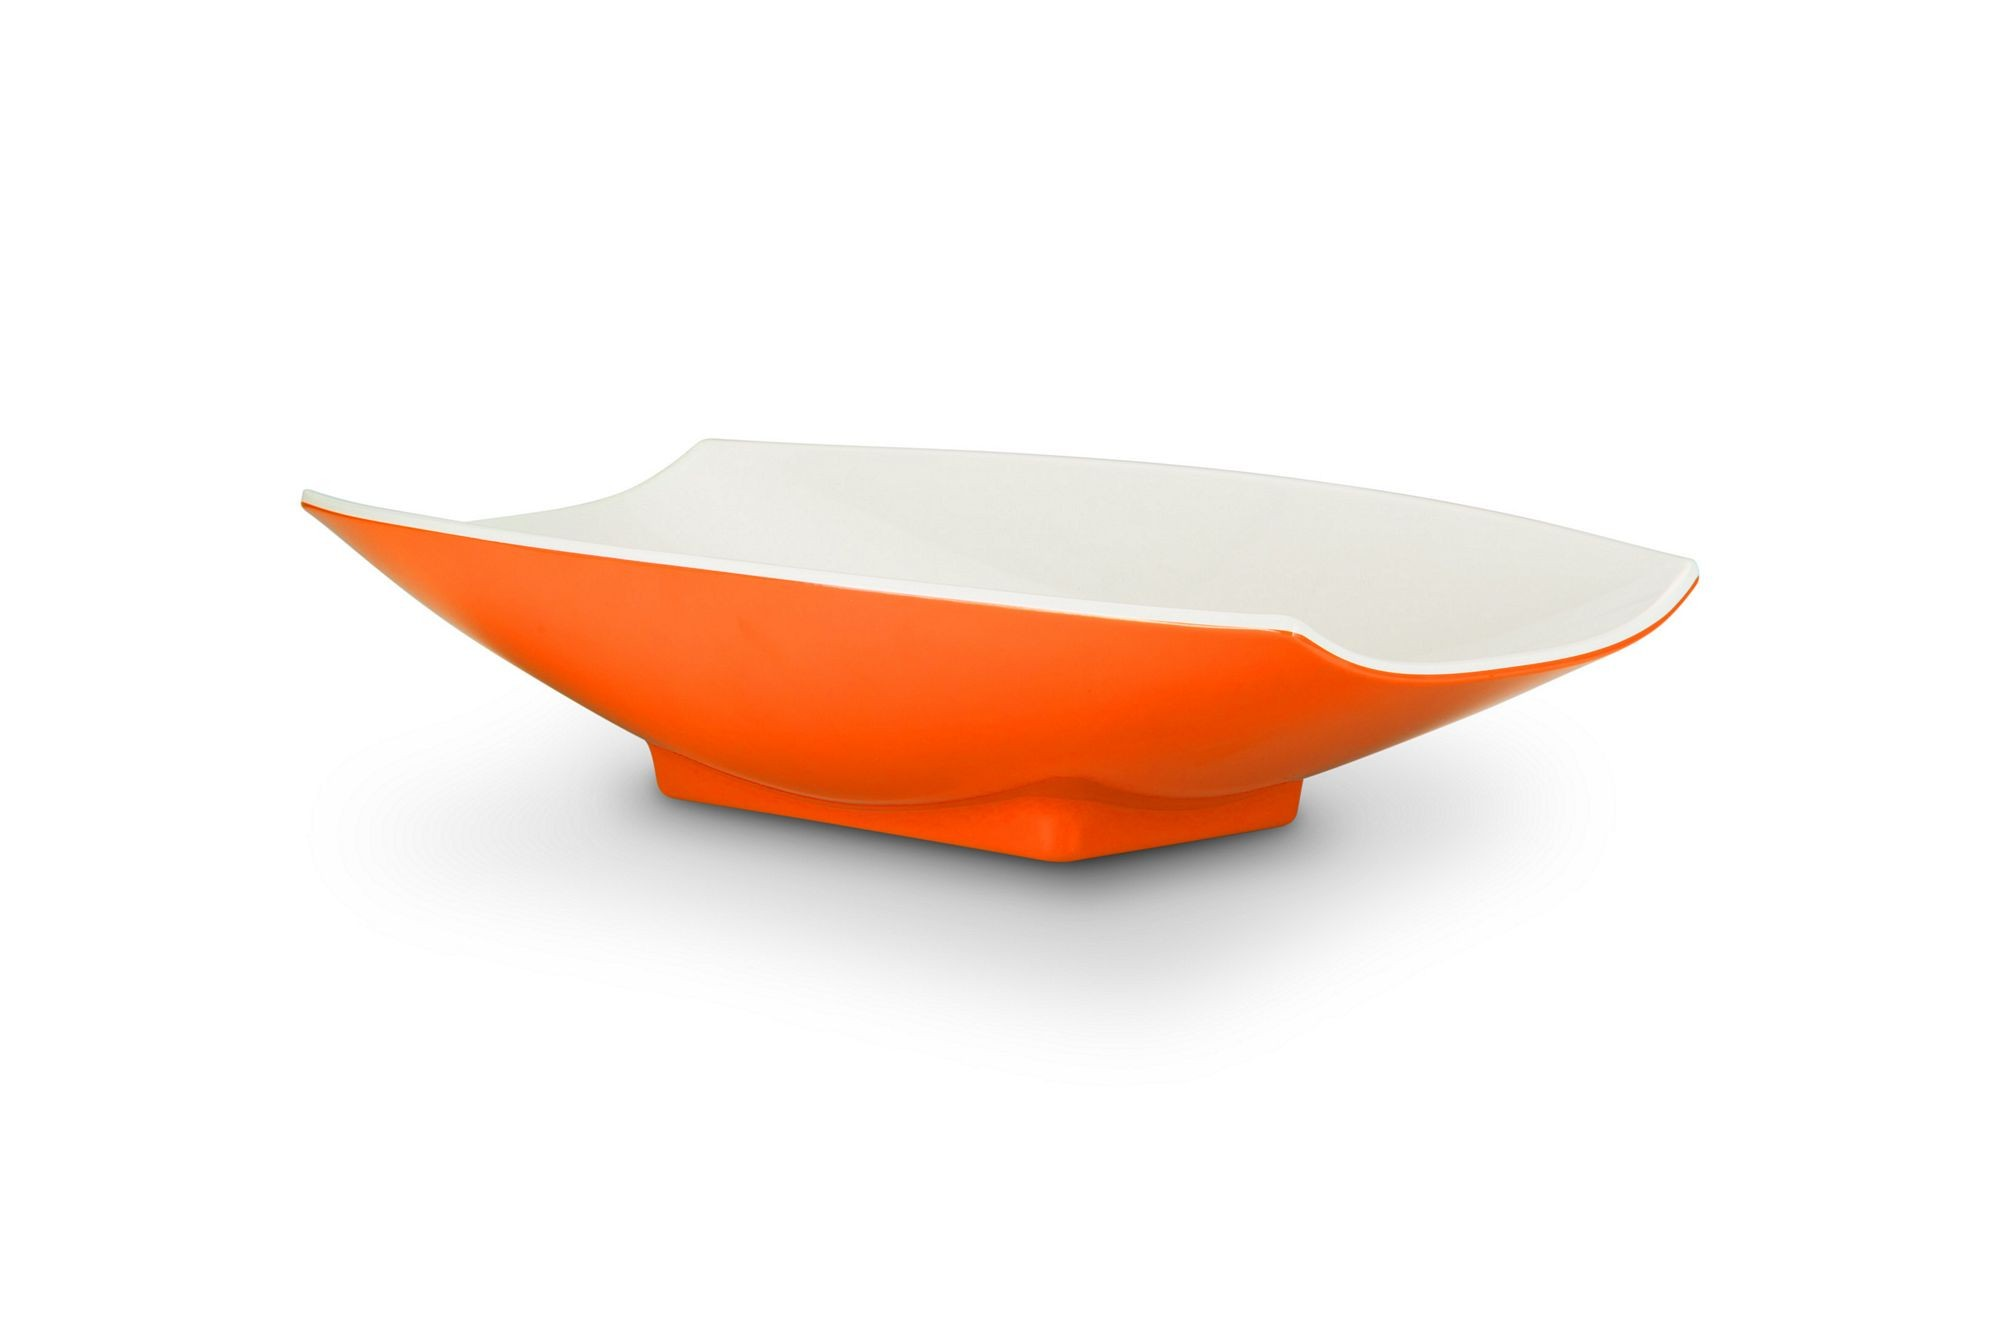 Bon Chef 53704-2ToneOrange Melamine Curves Bowl, Orange Outside/White Inside 2 Qt.